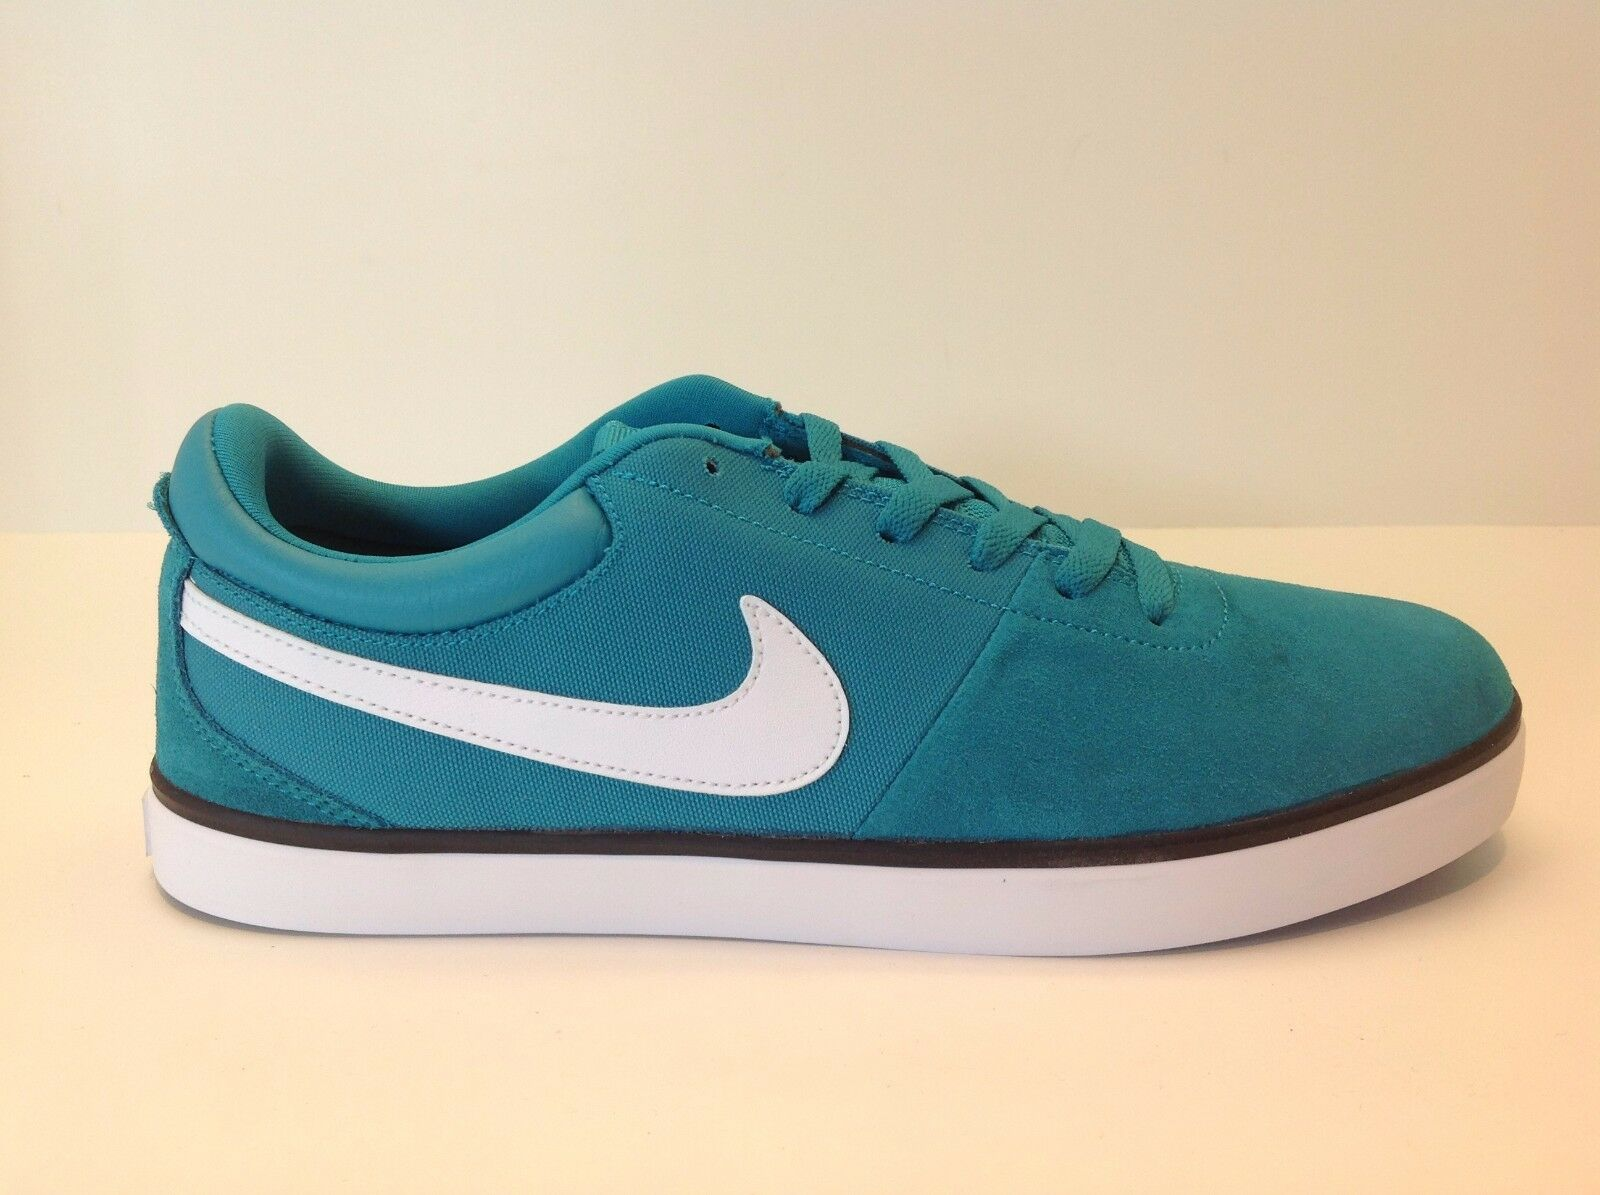 Nike Robona LR Turbo Green/White Men's Comfortable